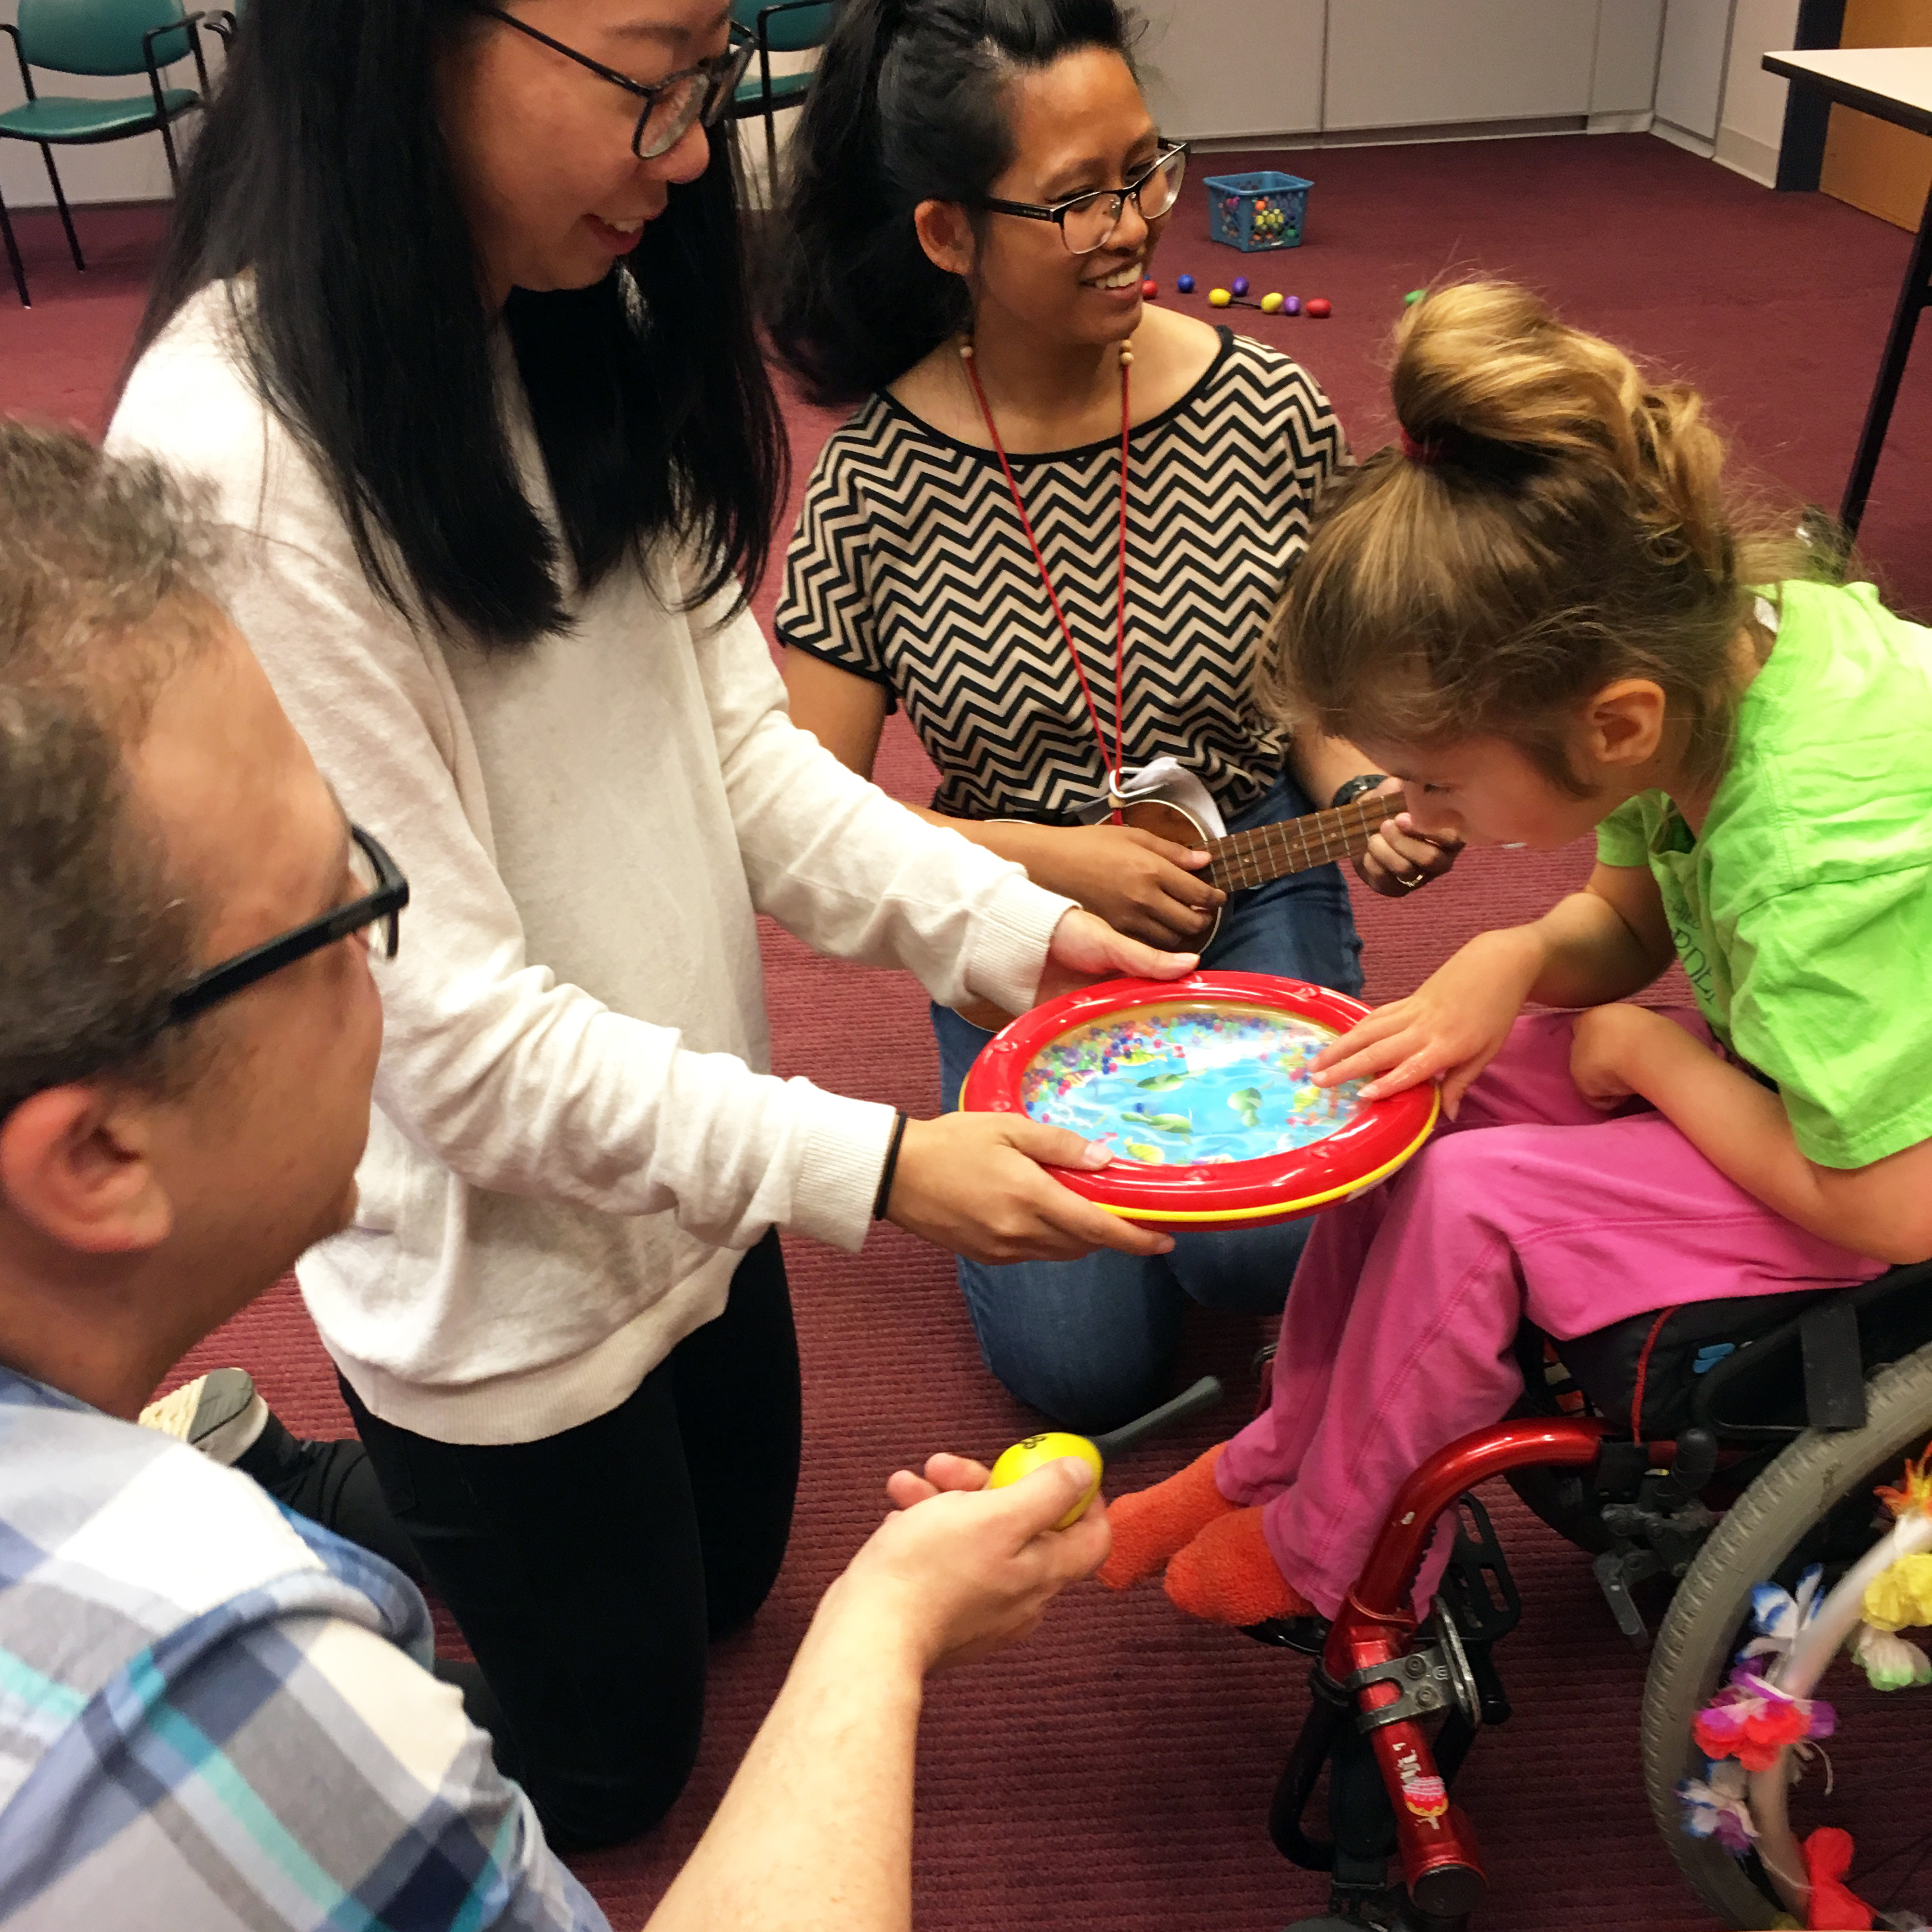 Music Therapy students from SPU play the ukulele, shaker, and sing as a youth patron in a wheelchair focuses on a port-hole toy. The toy has beads in it that, when moved, produce a sound like ocean waves.